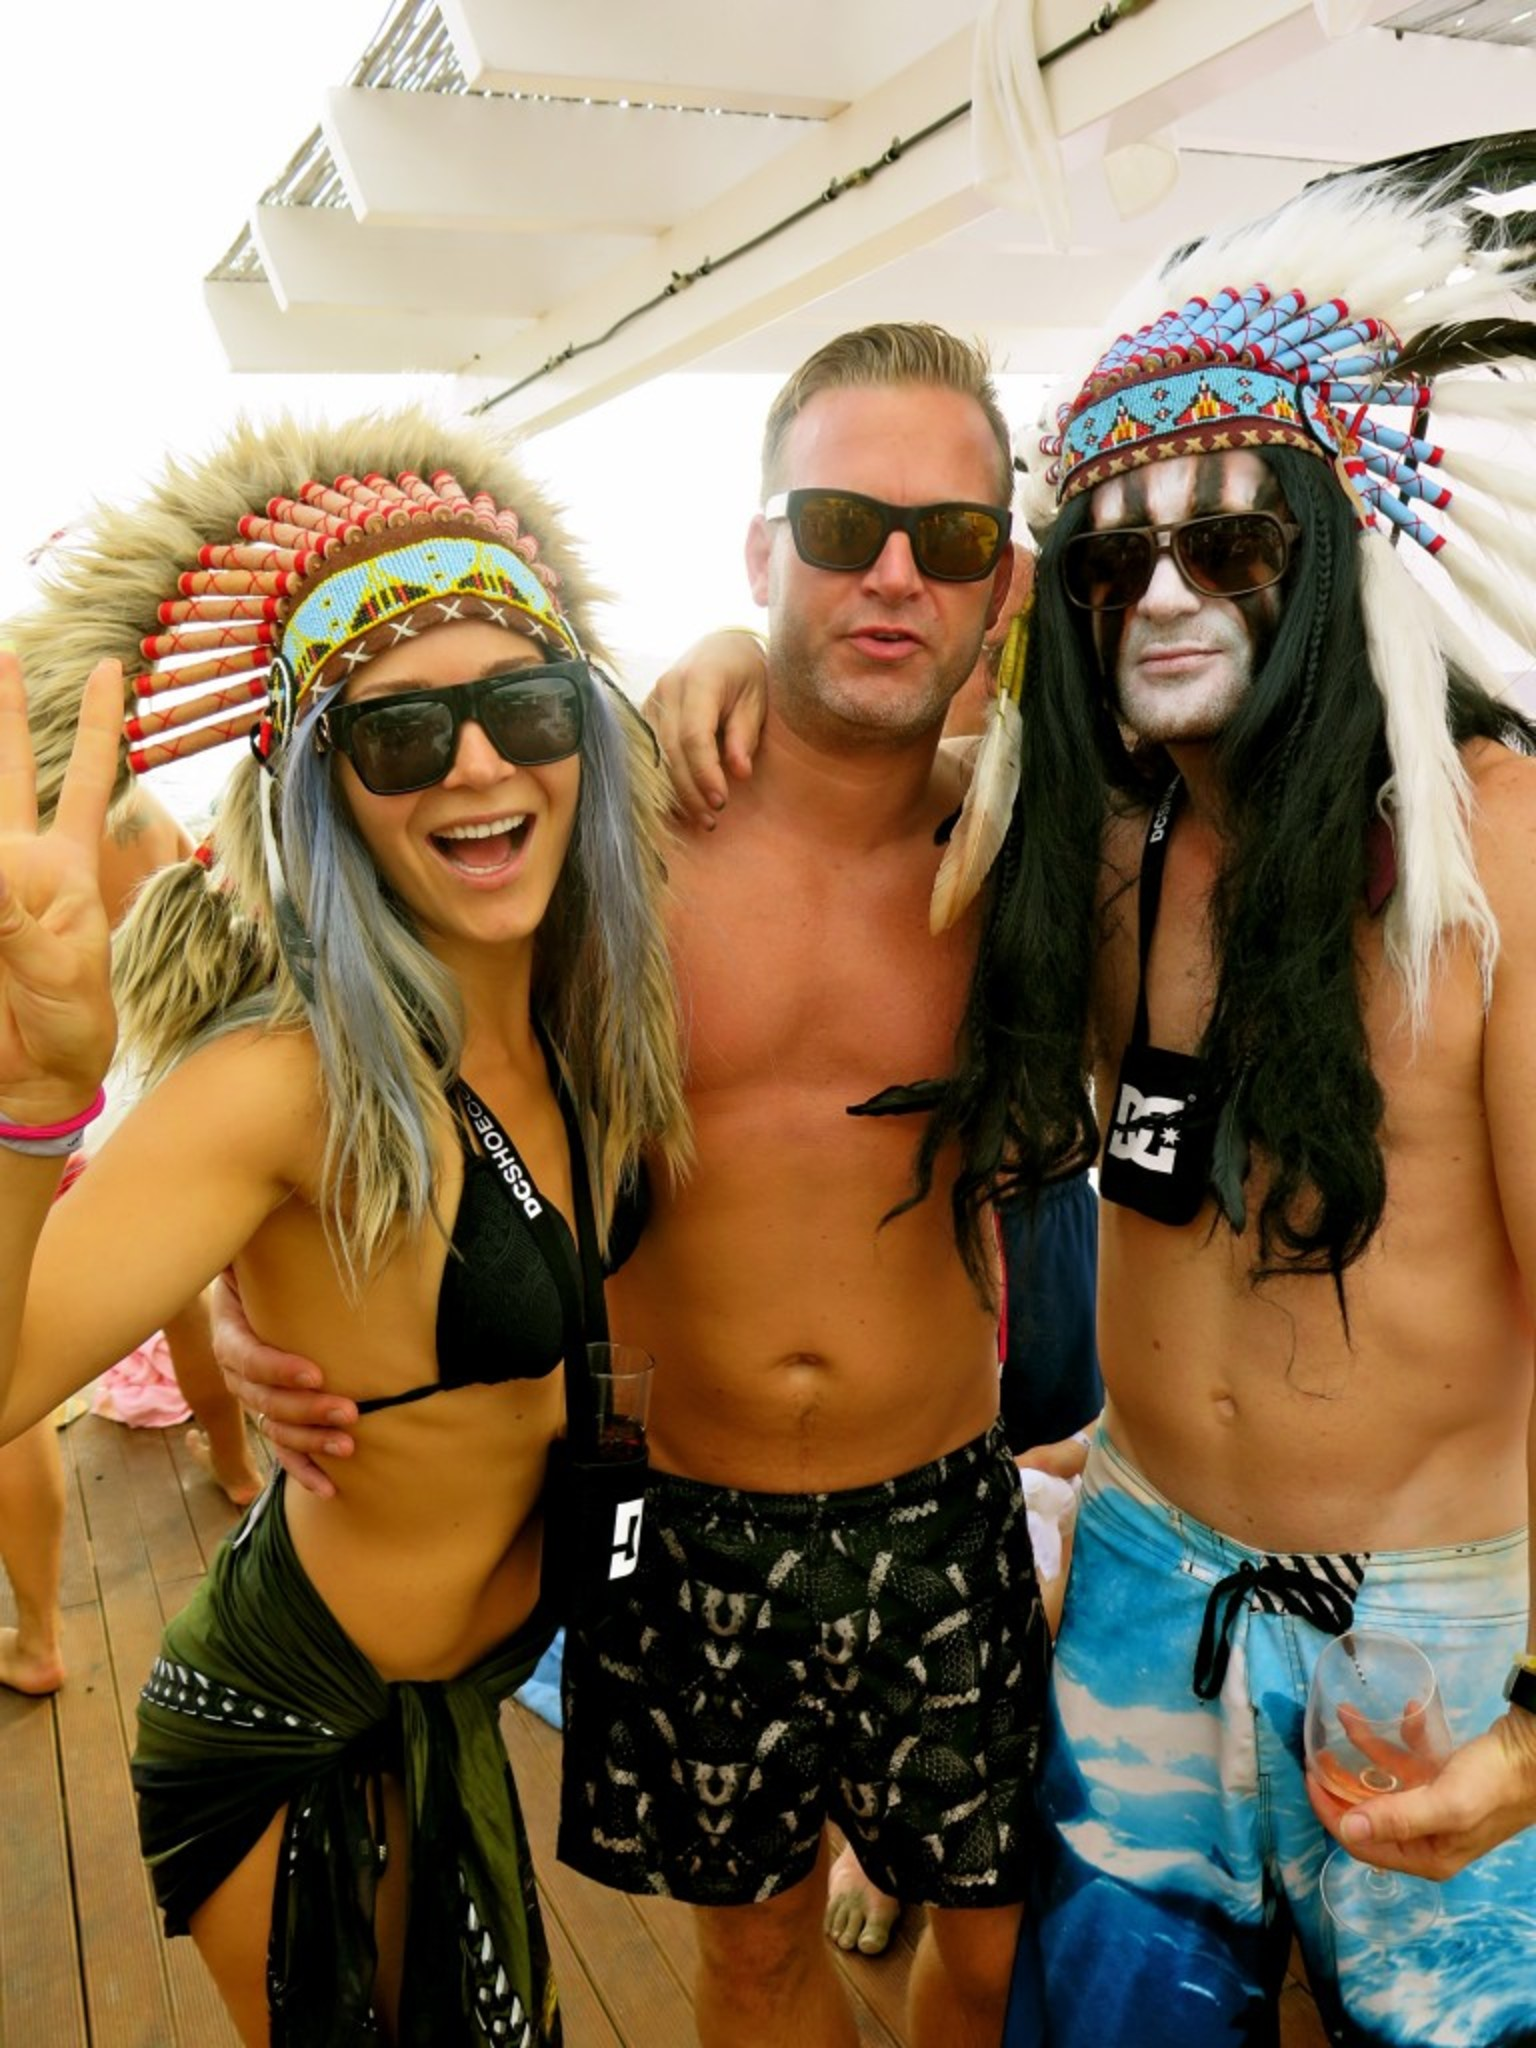 Met these indians in the Moet Cabana next to us, they were also celebrating their BdayBash.. So you know how it is.. We all became friends!